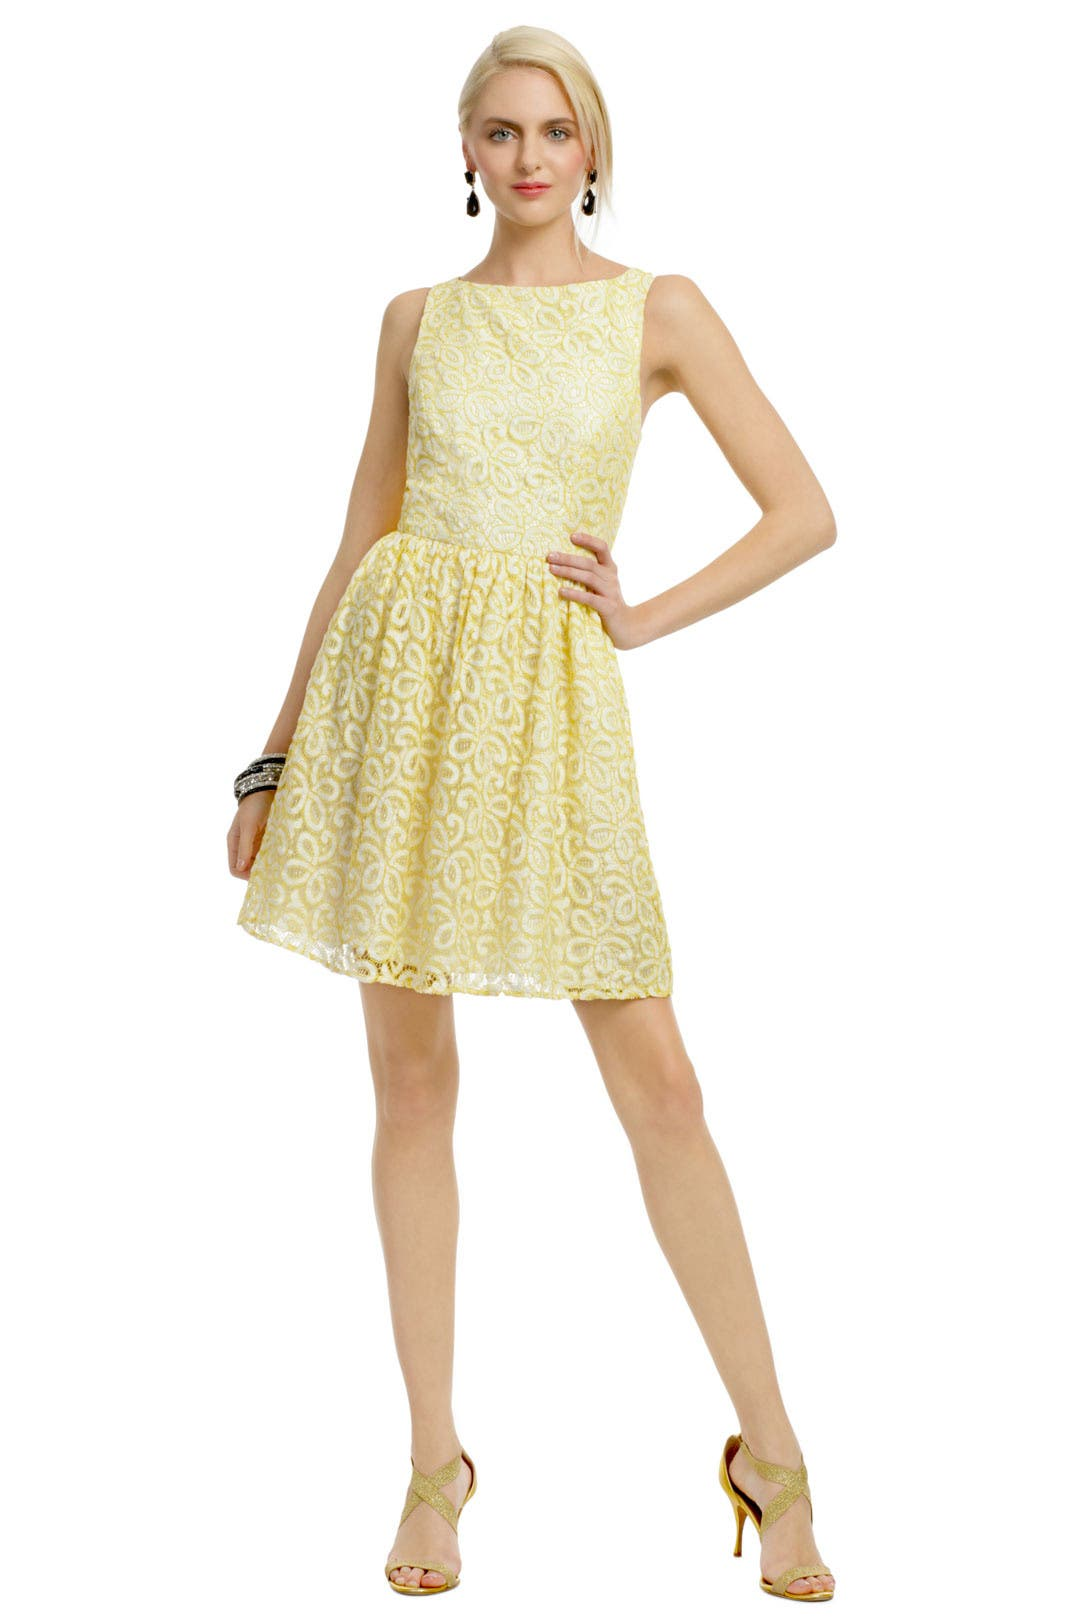 Oh La La Lace Dress by Shoshanna